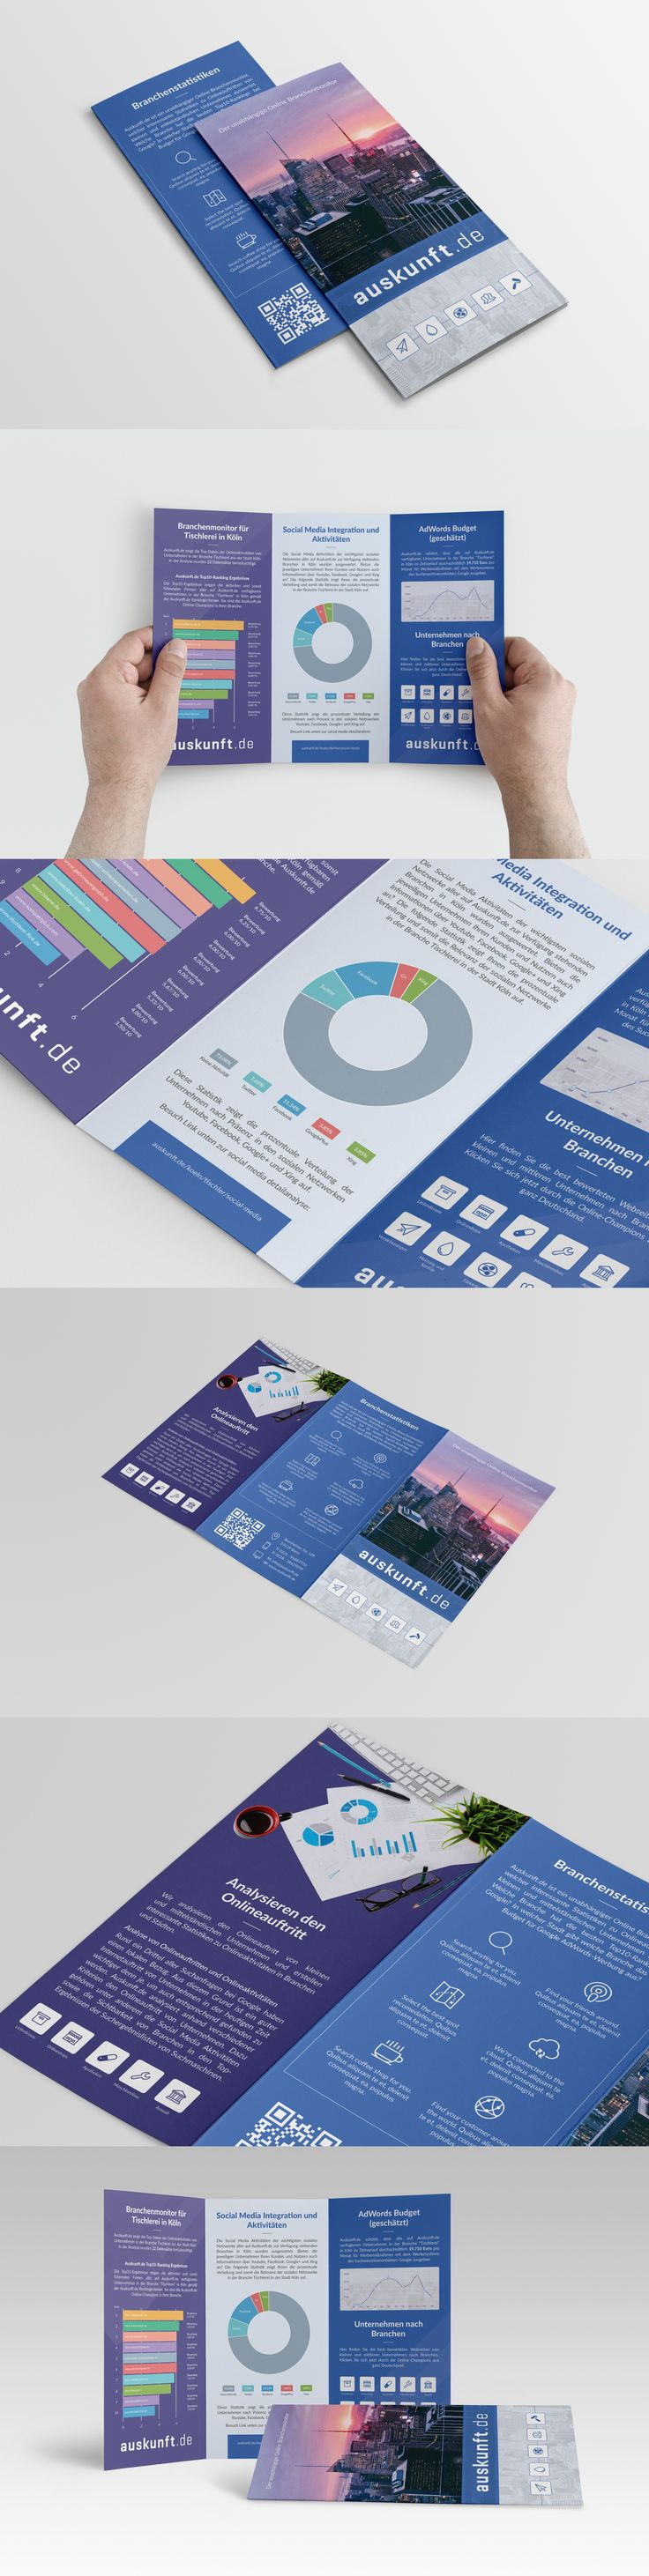 How cool is this? #brochure #internet #blue #modern #purple #chart #printdesign #print #trifold #cladogram #histogram #indesign #illustrator #photoshop